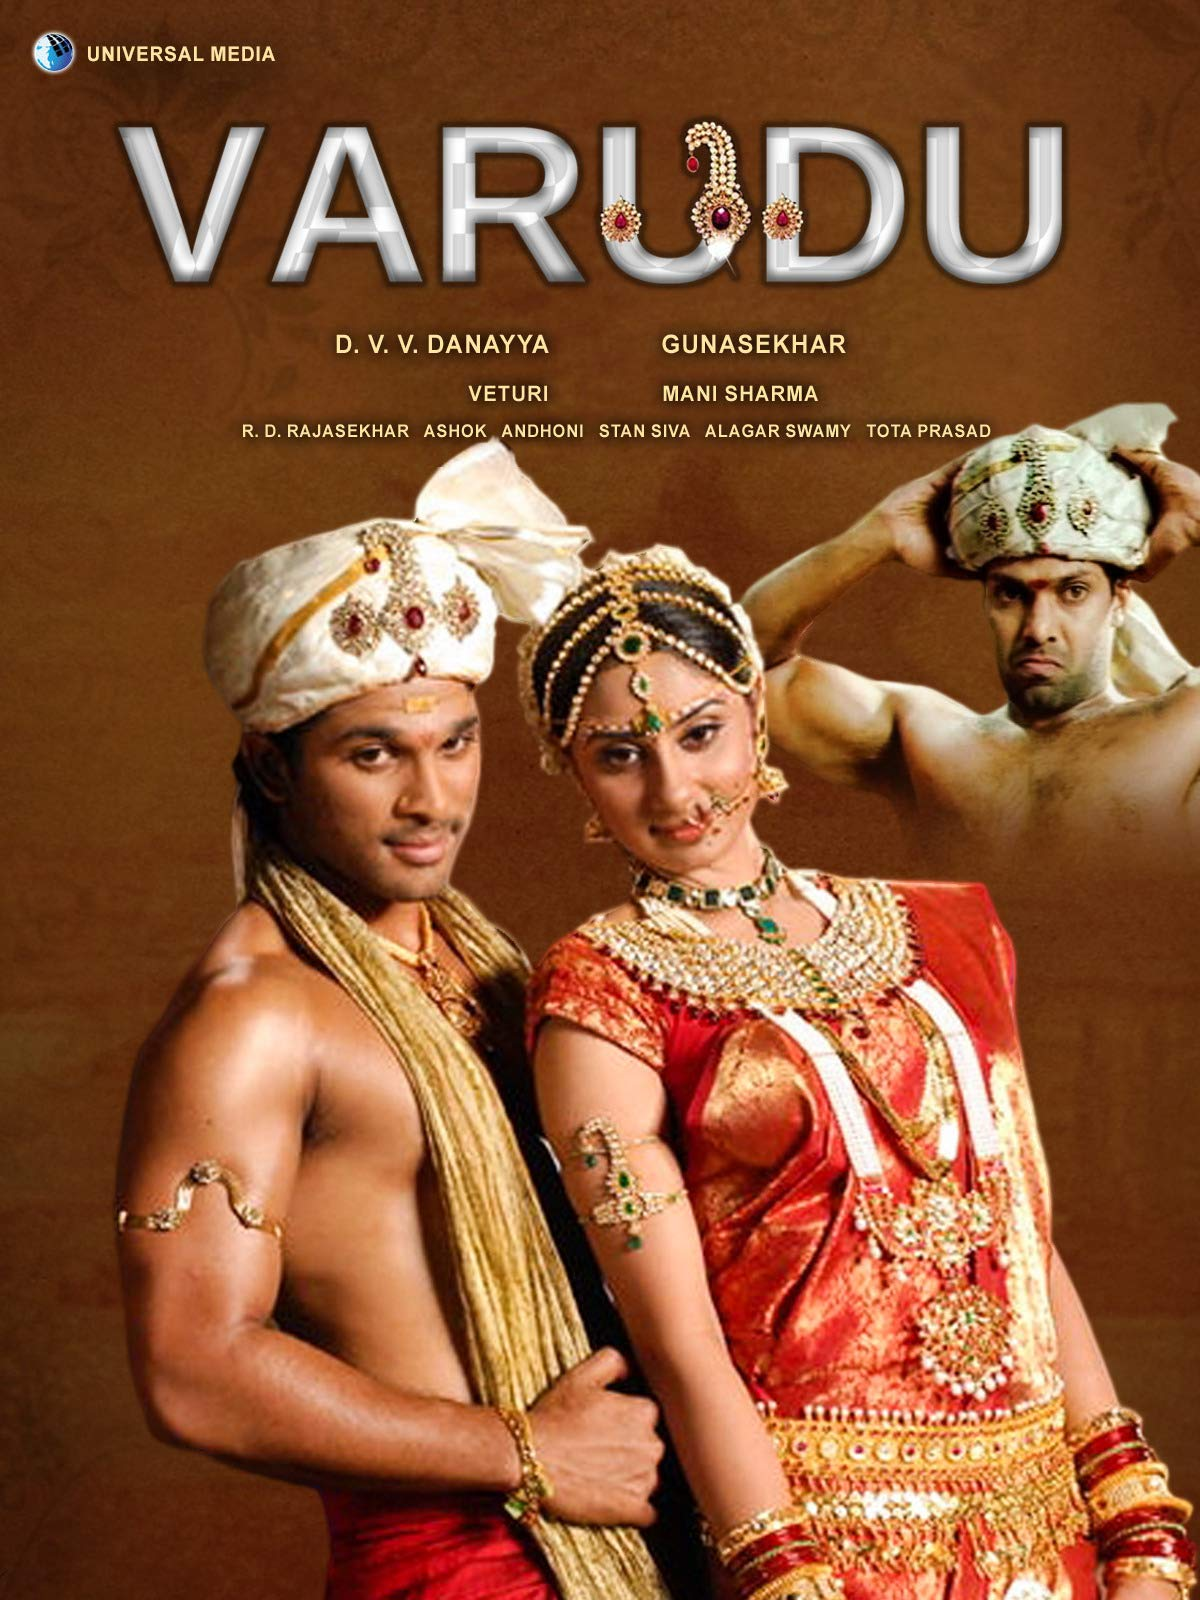 Varudu (Ek Aur Rakshak) 2021 Hindi Dubbed 720p HDRip 1.1GB Download